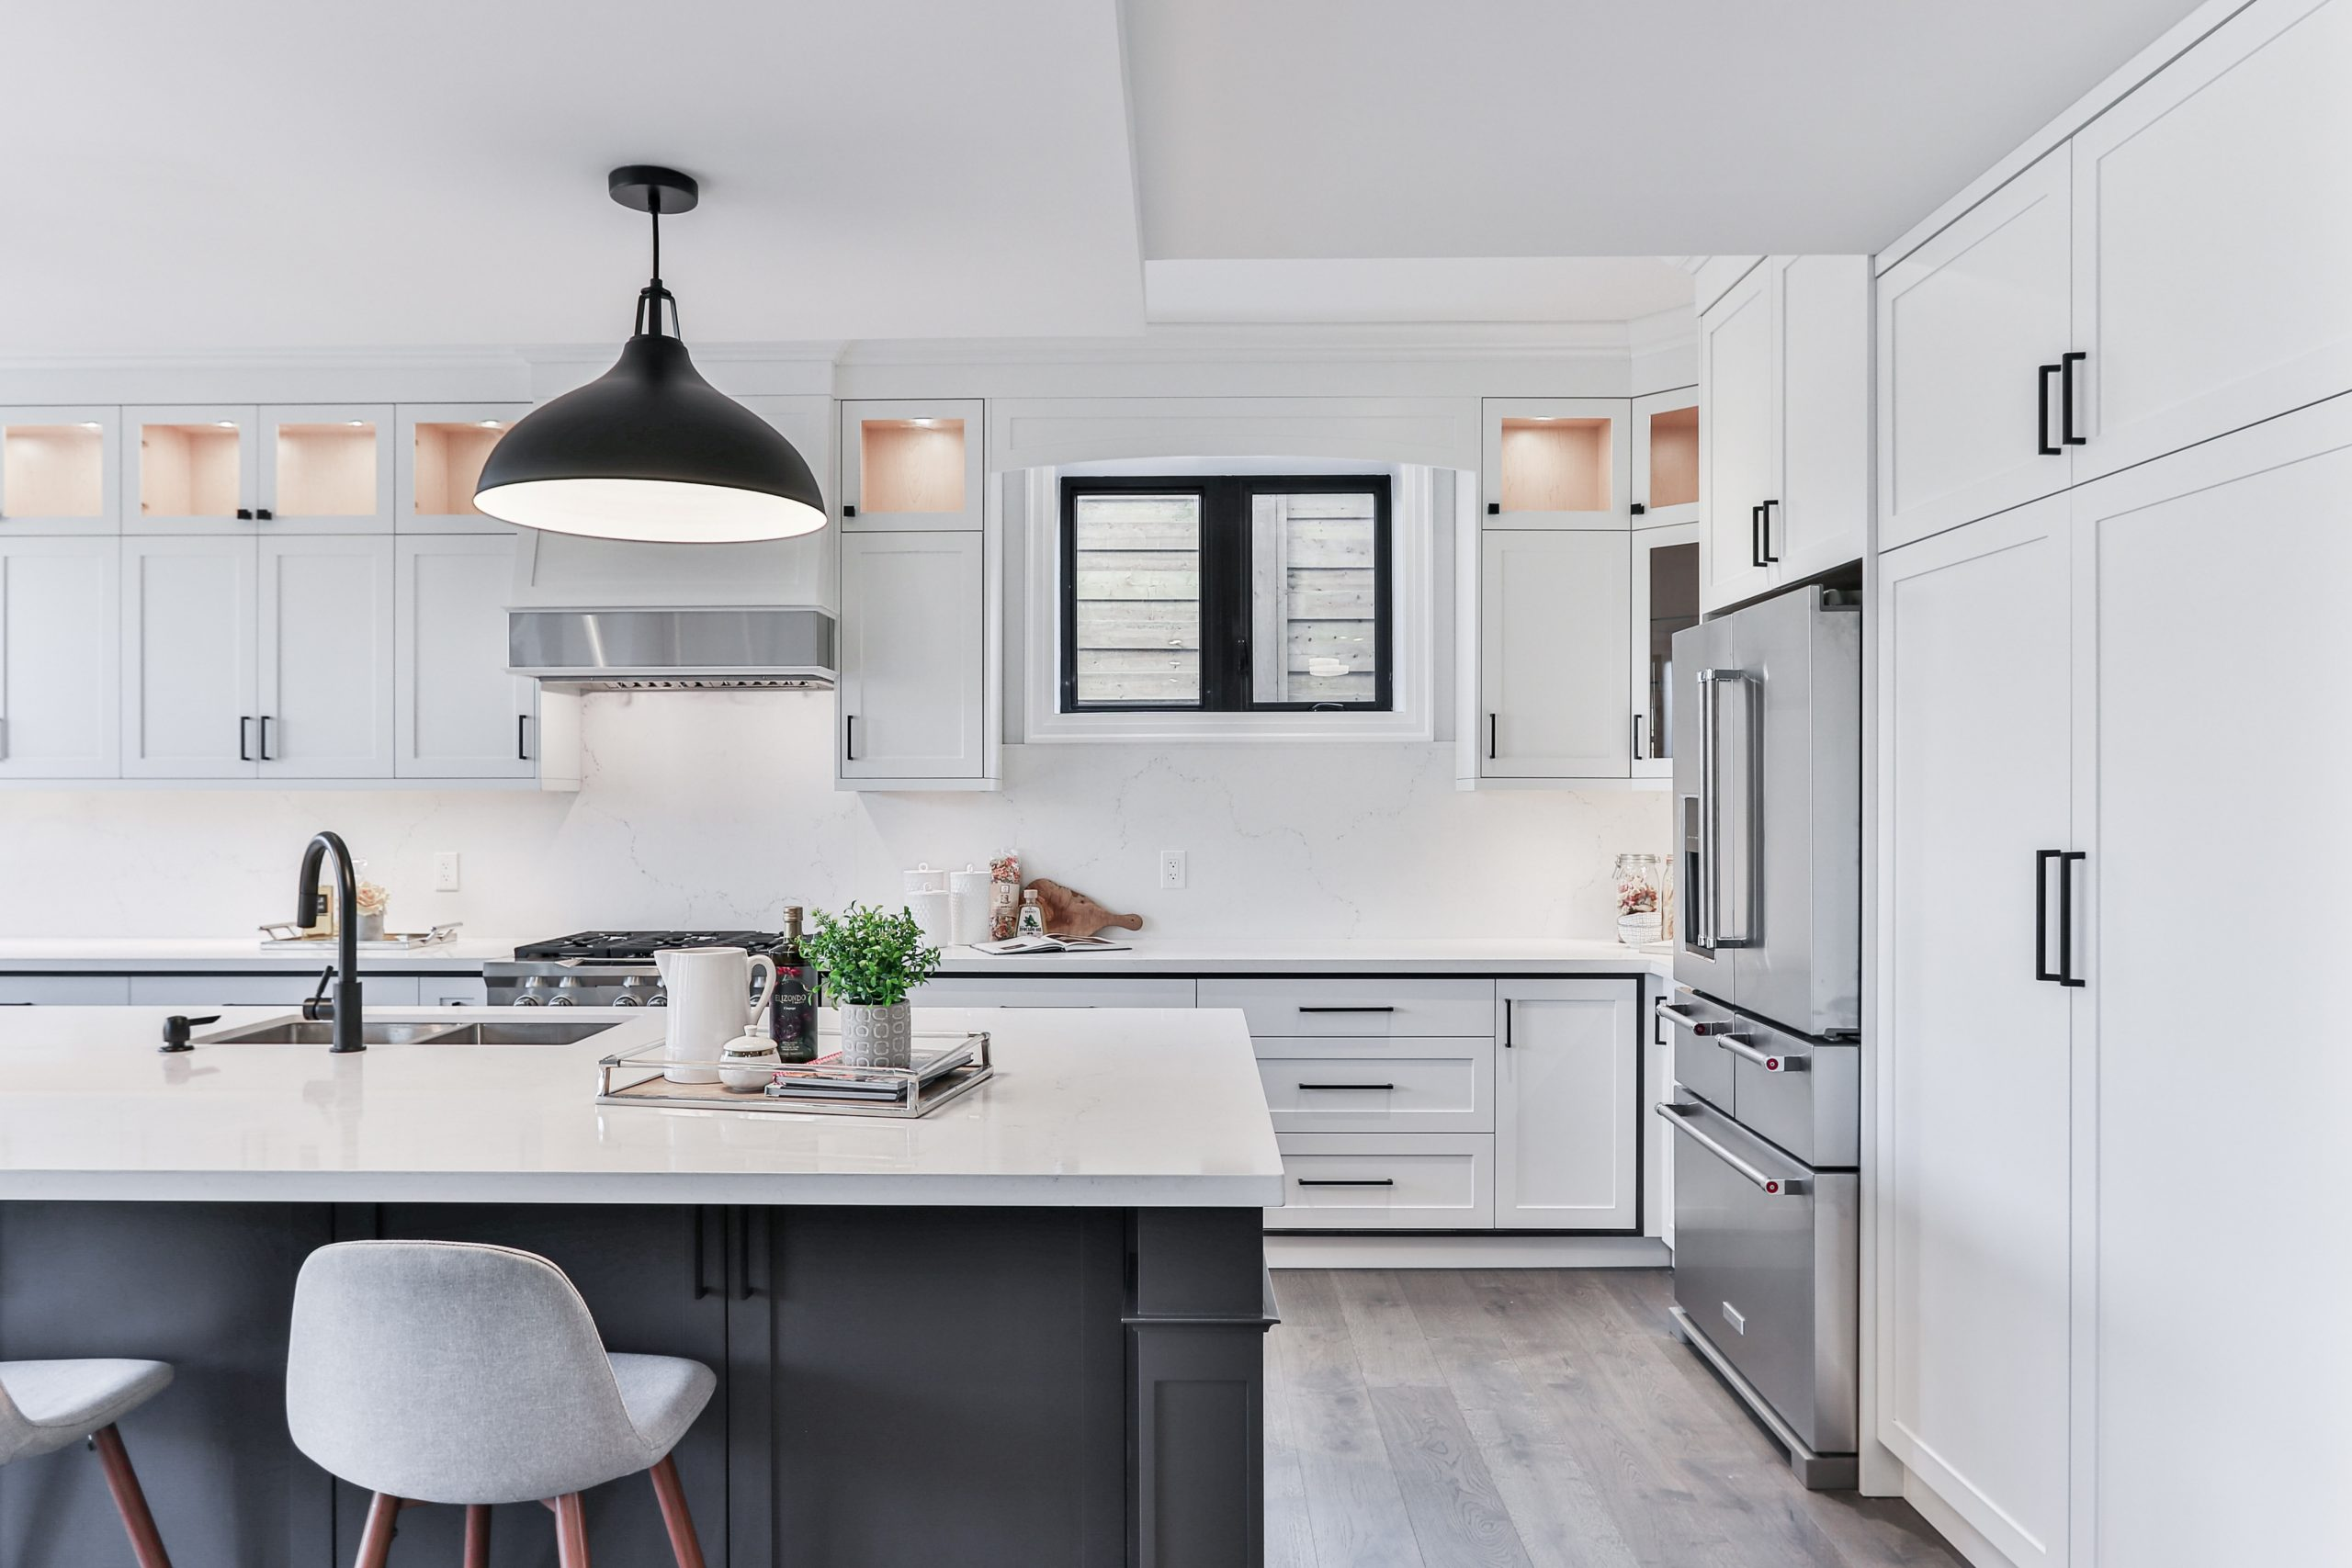 Squamish Home Organizer: 7 Reasons You'll Love Working With One